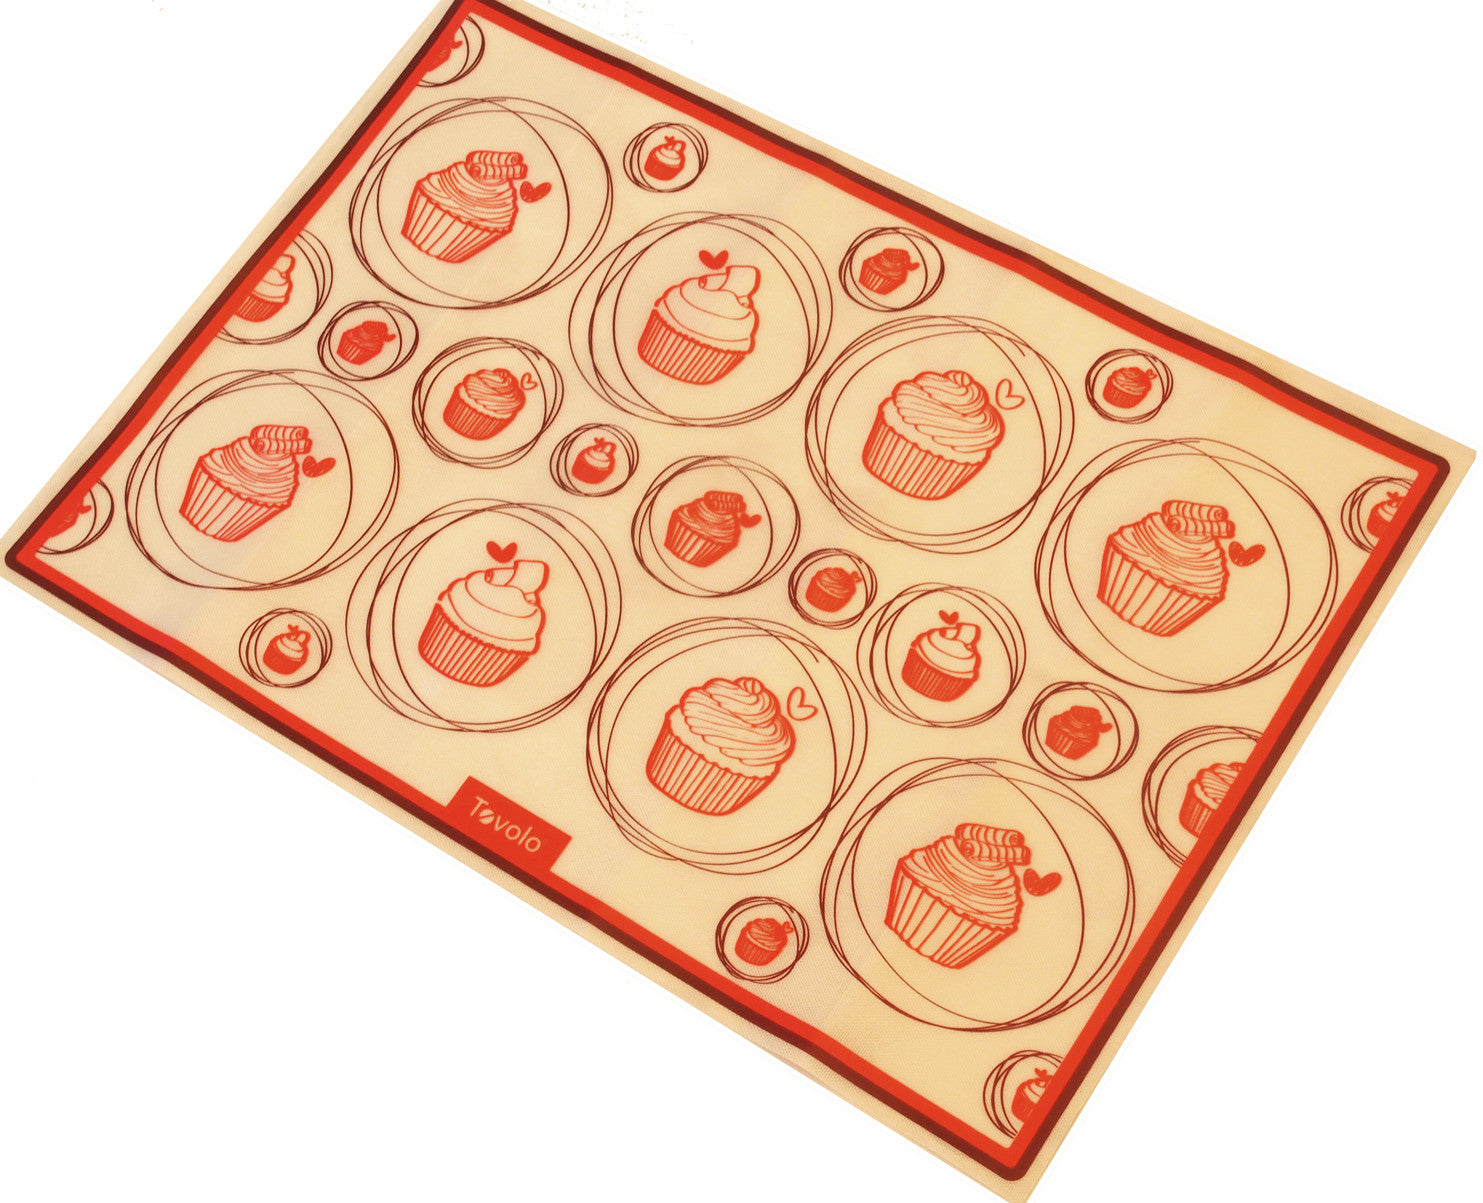 Silicon Baking Mat (Reusable!)